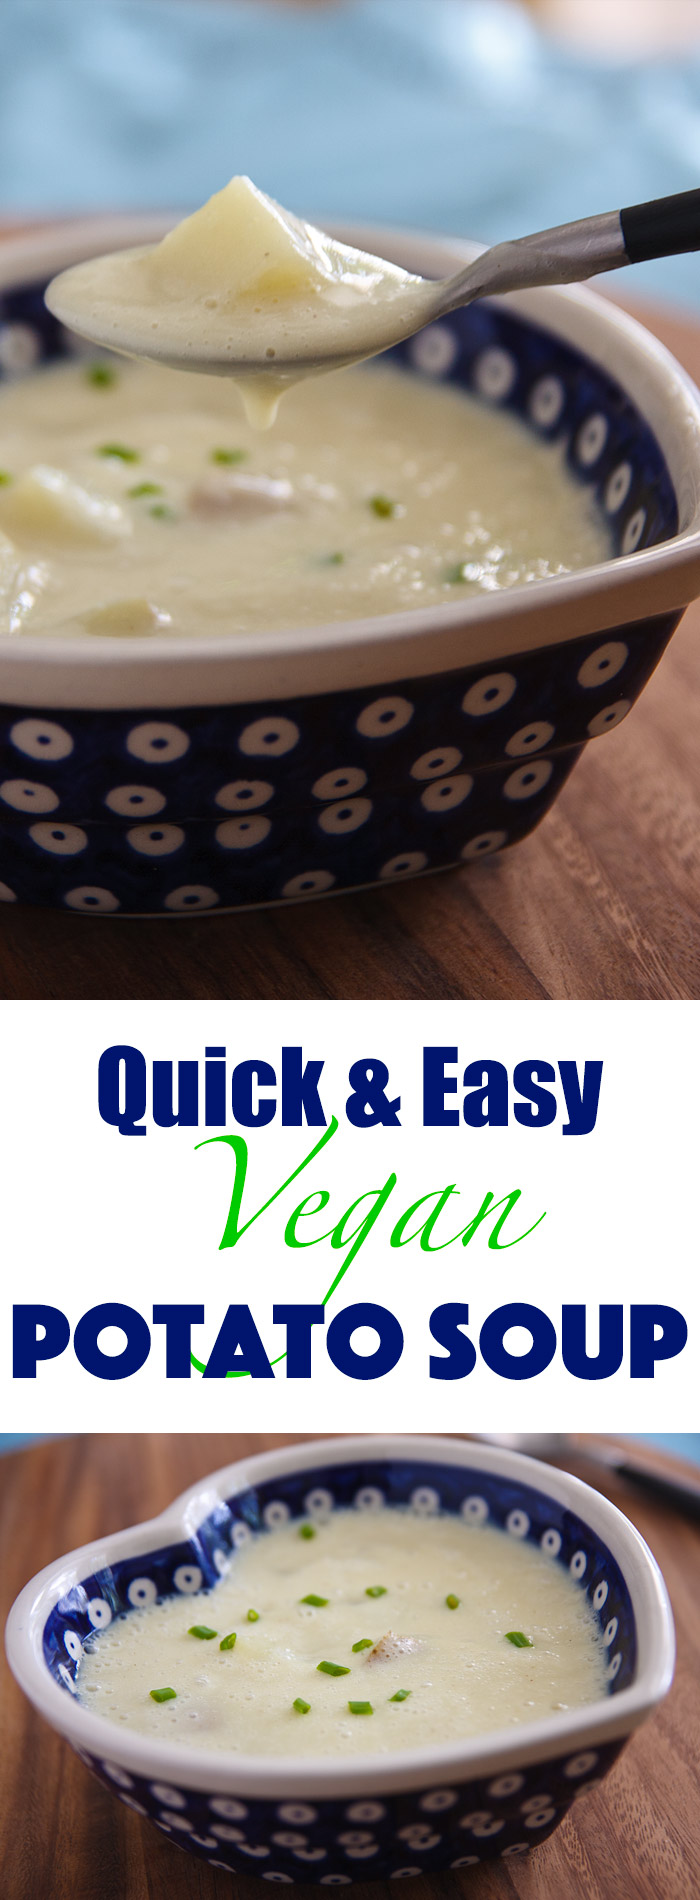 Quick and Easy Potato Soup: Rich and creamy, this vegan potato soup has no added fat and can be made in minutes in a blender. #vegan #wfpb #wfpbno #vegetarian